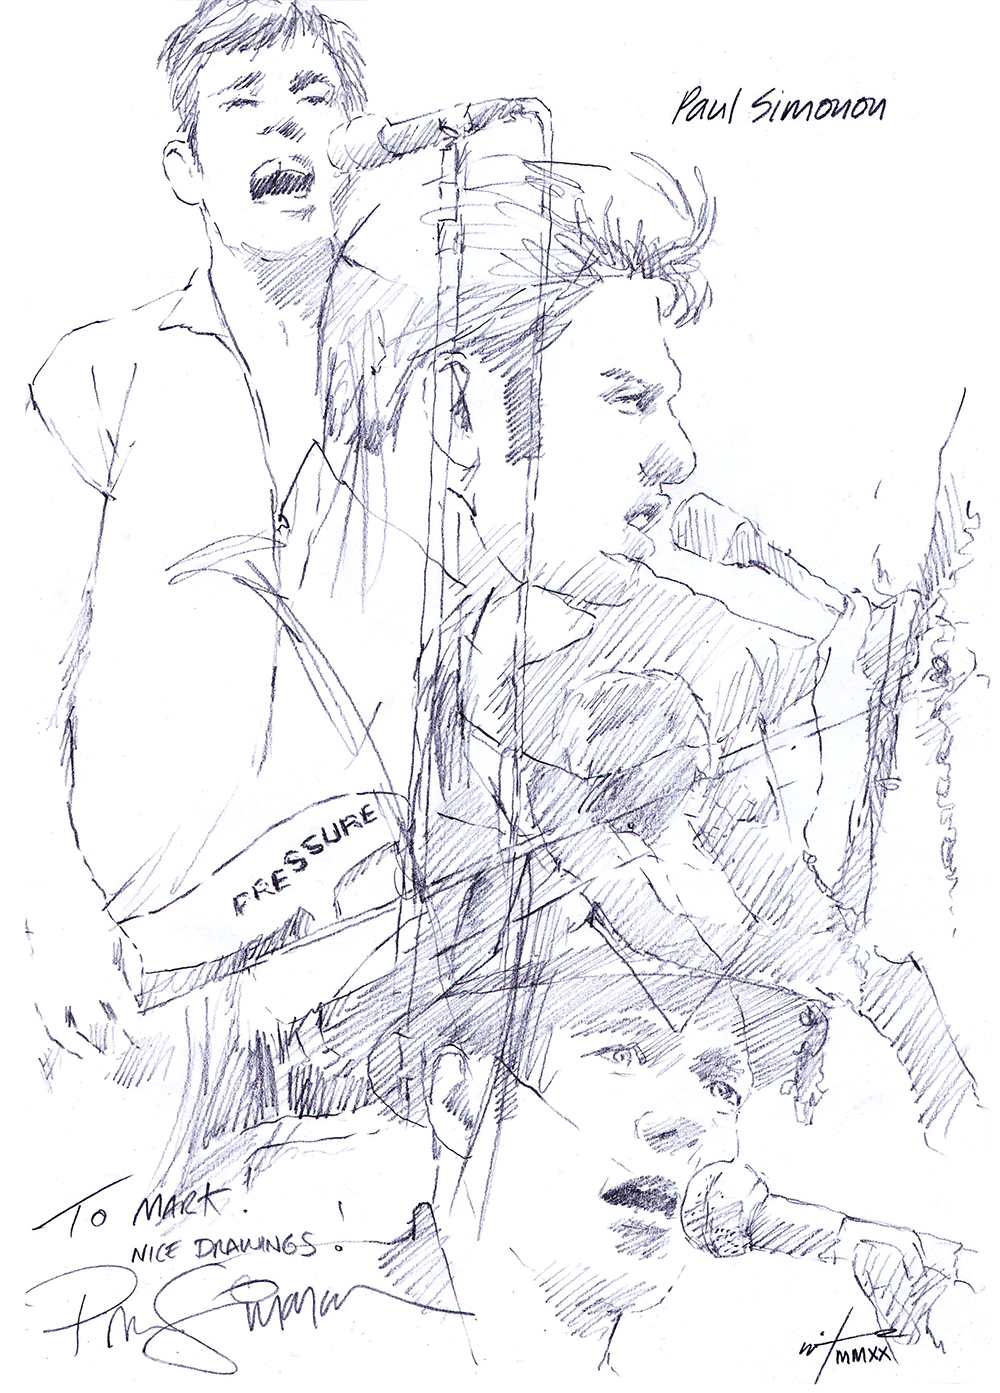 Autographed drawing of musician Paul Simonon of The Clash